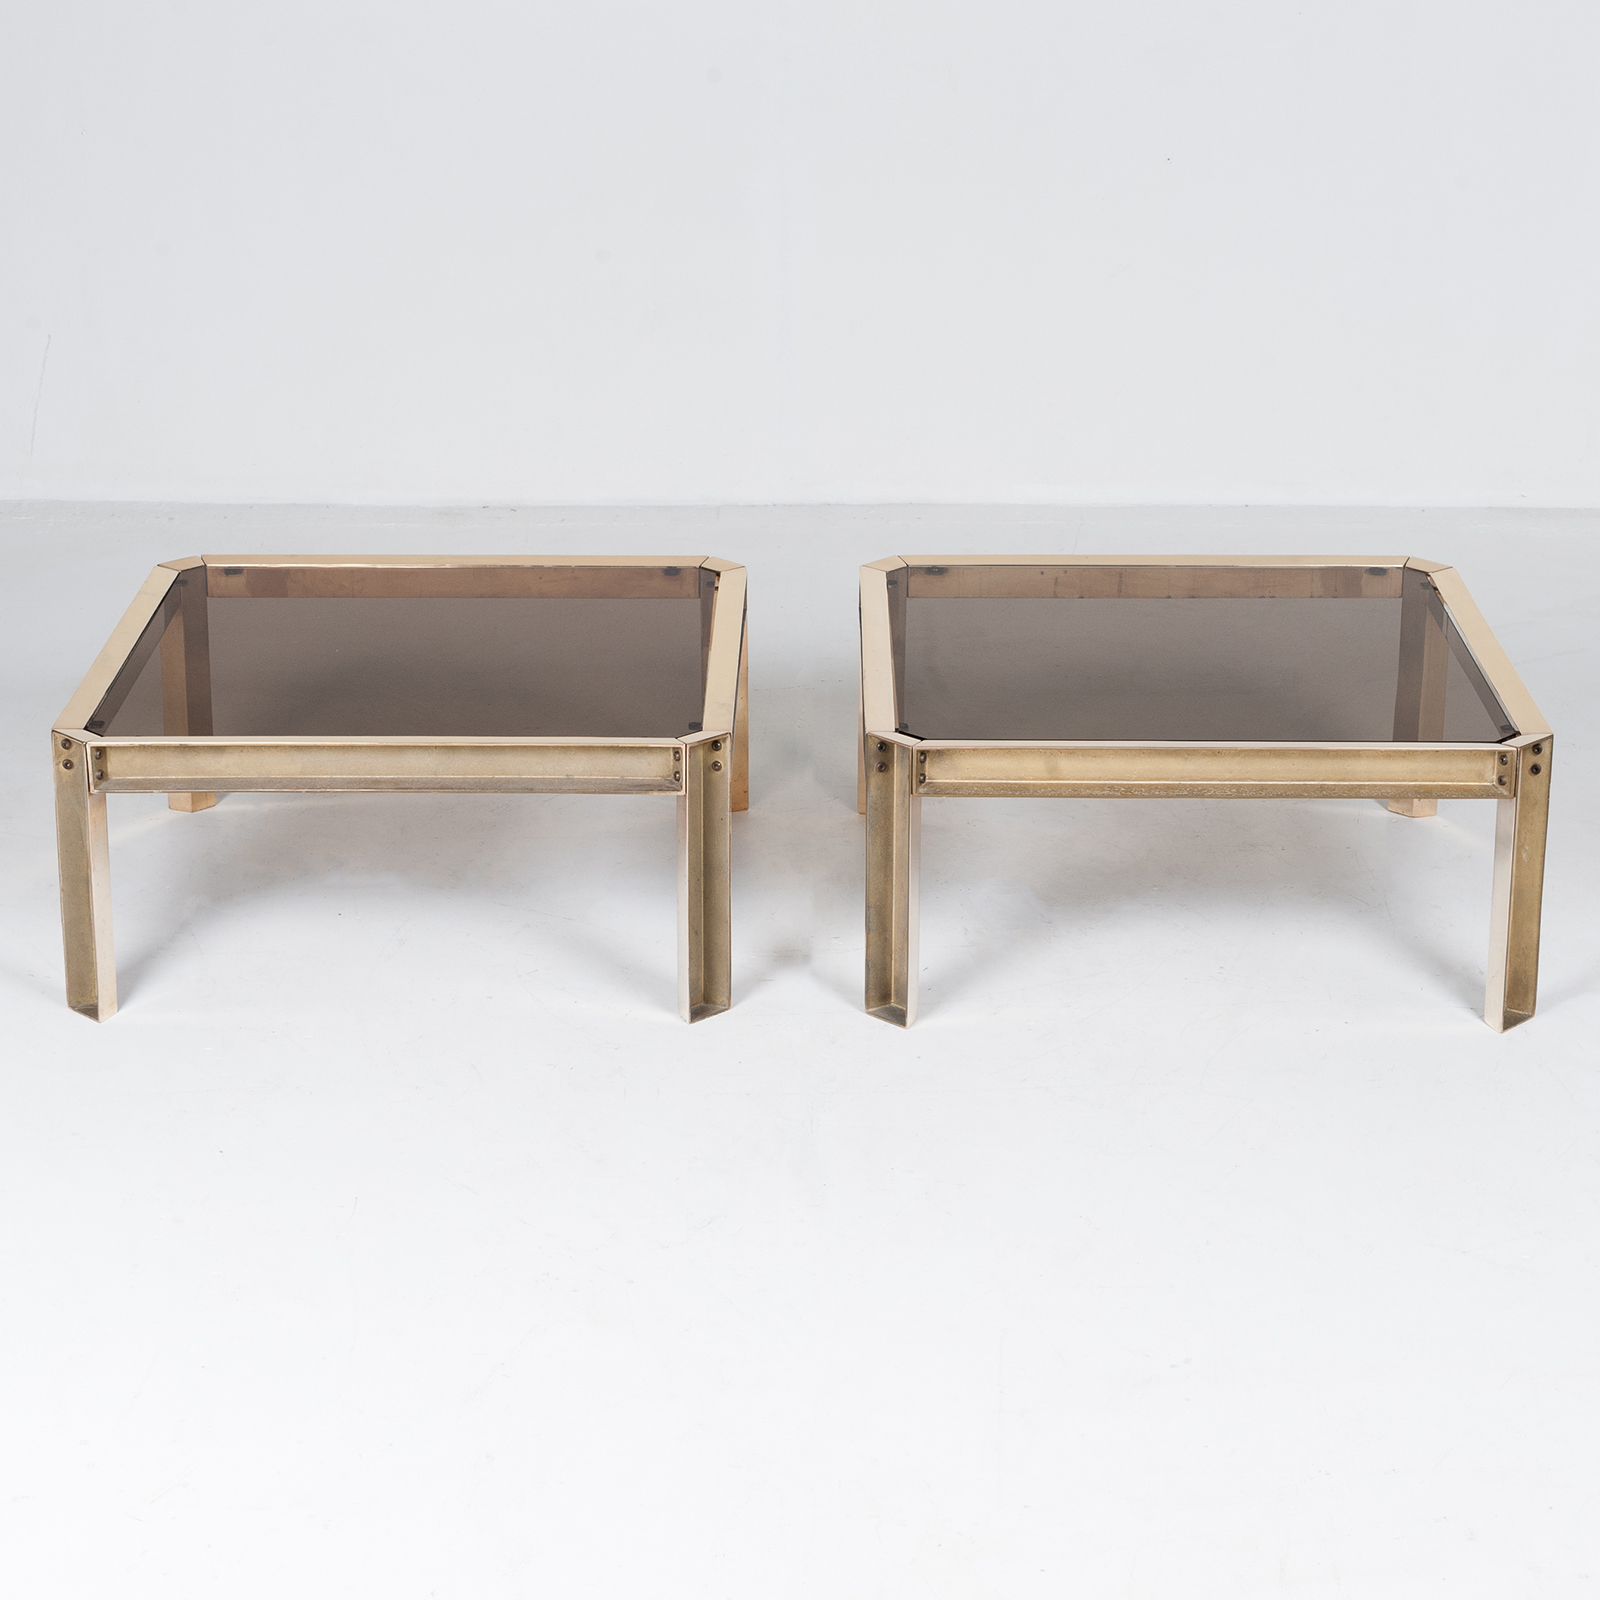 Side Table By Peter Ghyczy With Hollow Cast Brass Frame And Smoked Glass Top, 1970s, The Netherlands 32